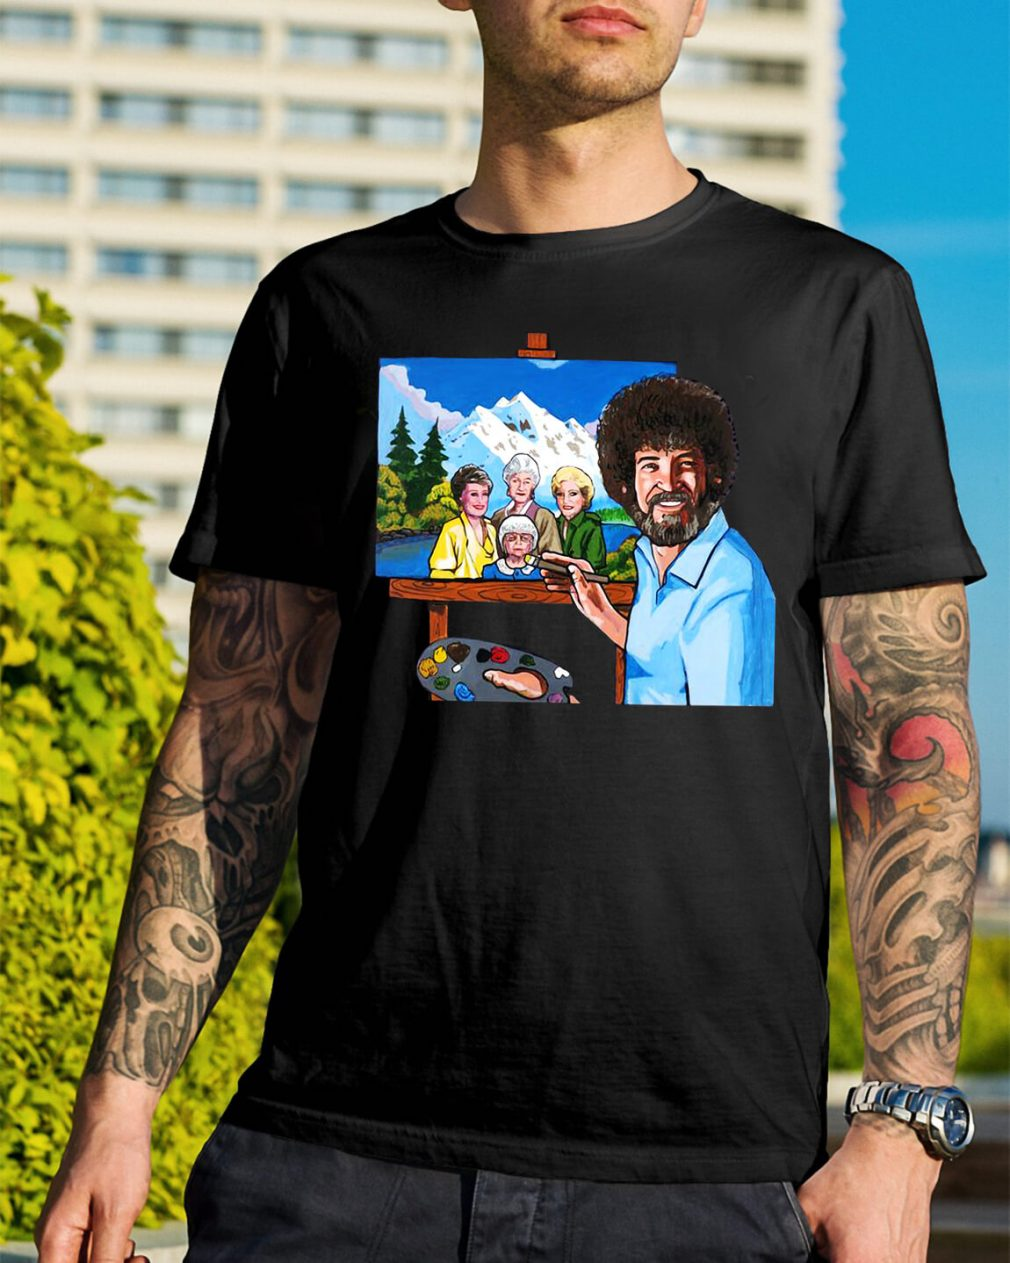 The golden girl by bob ross shirt